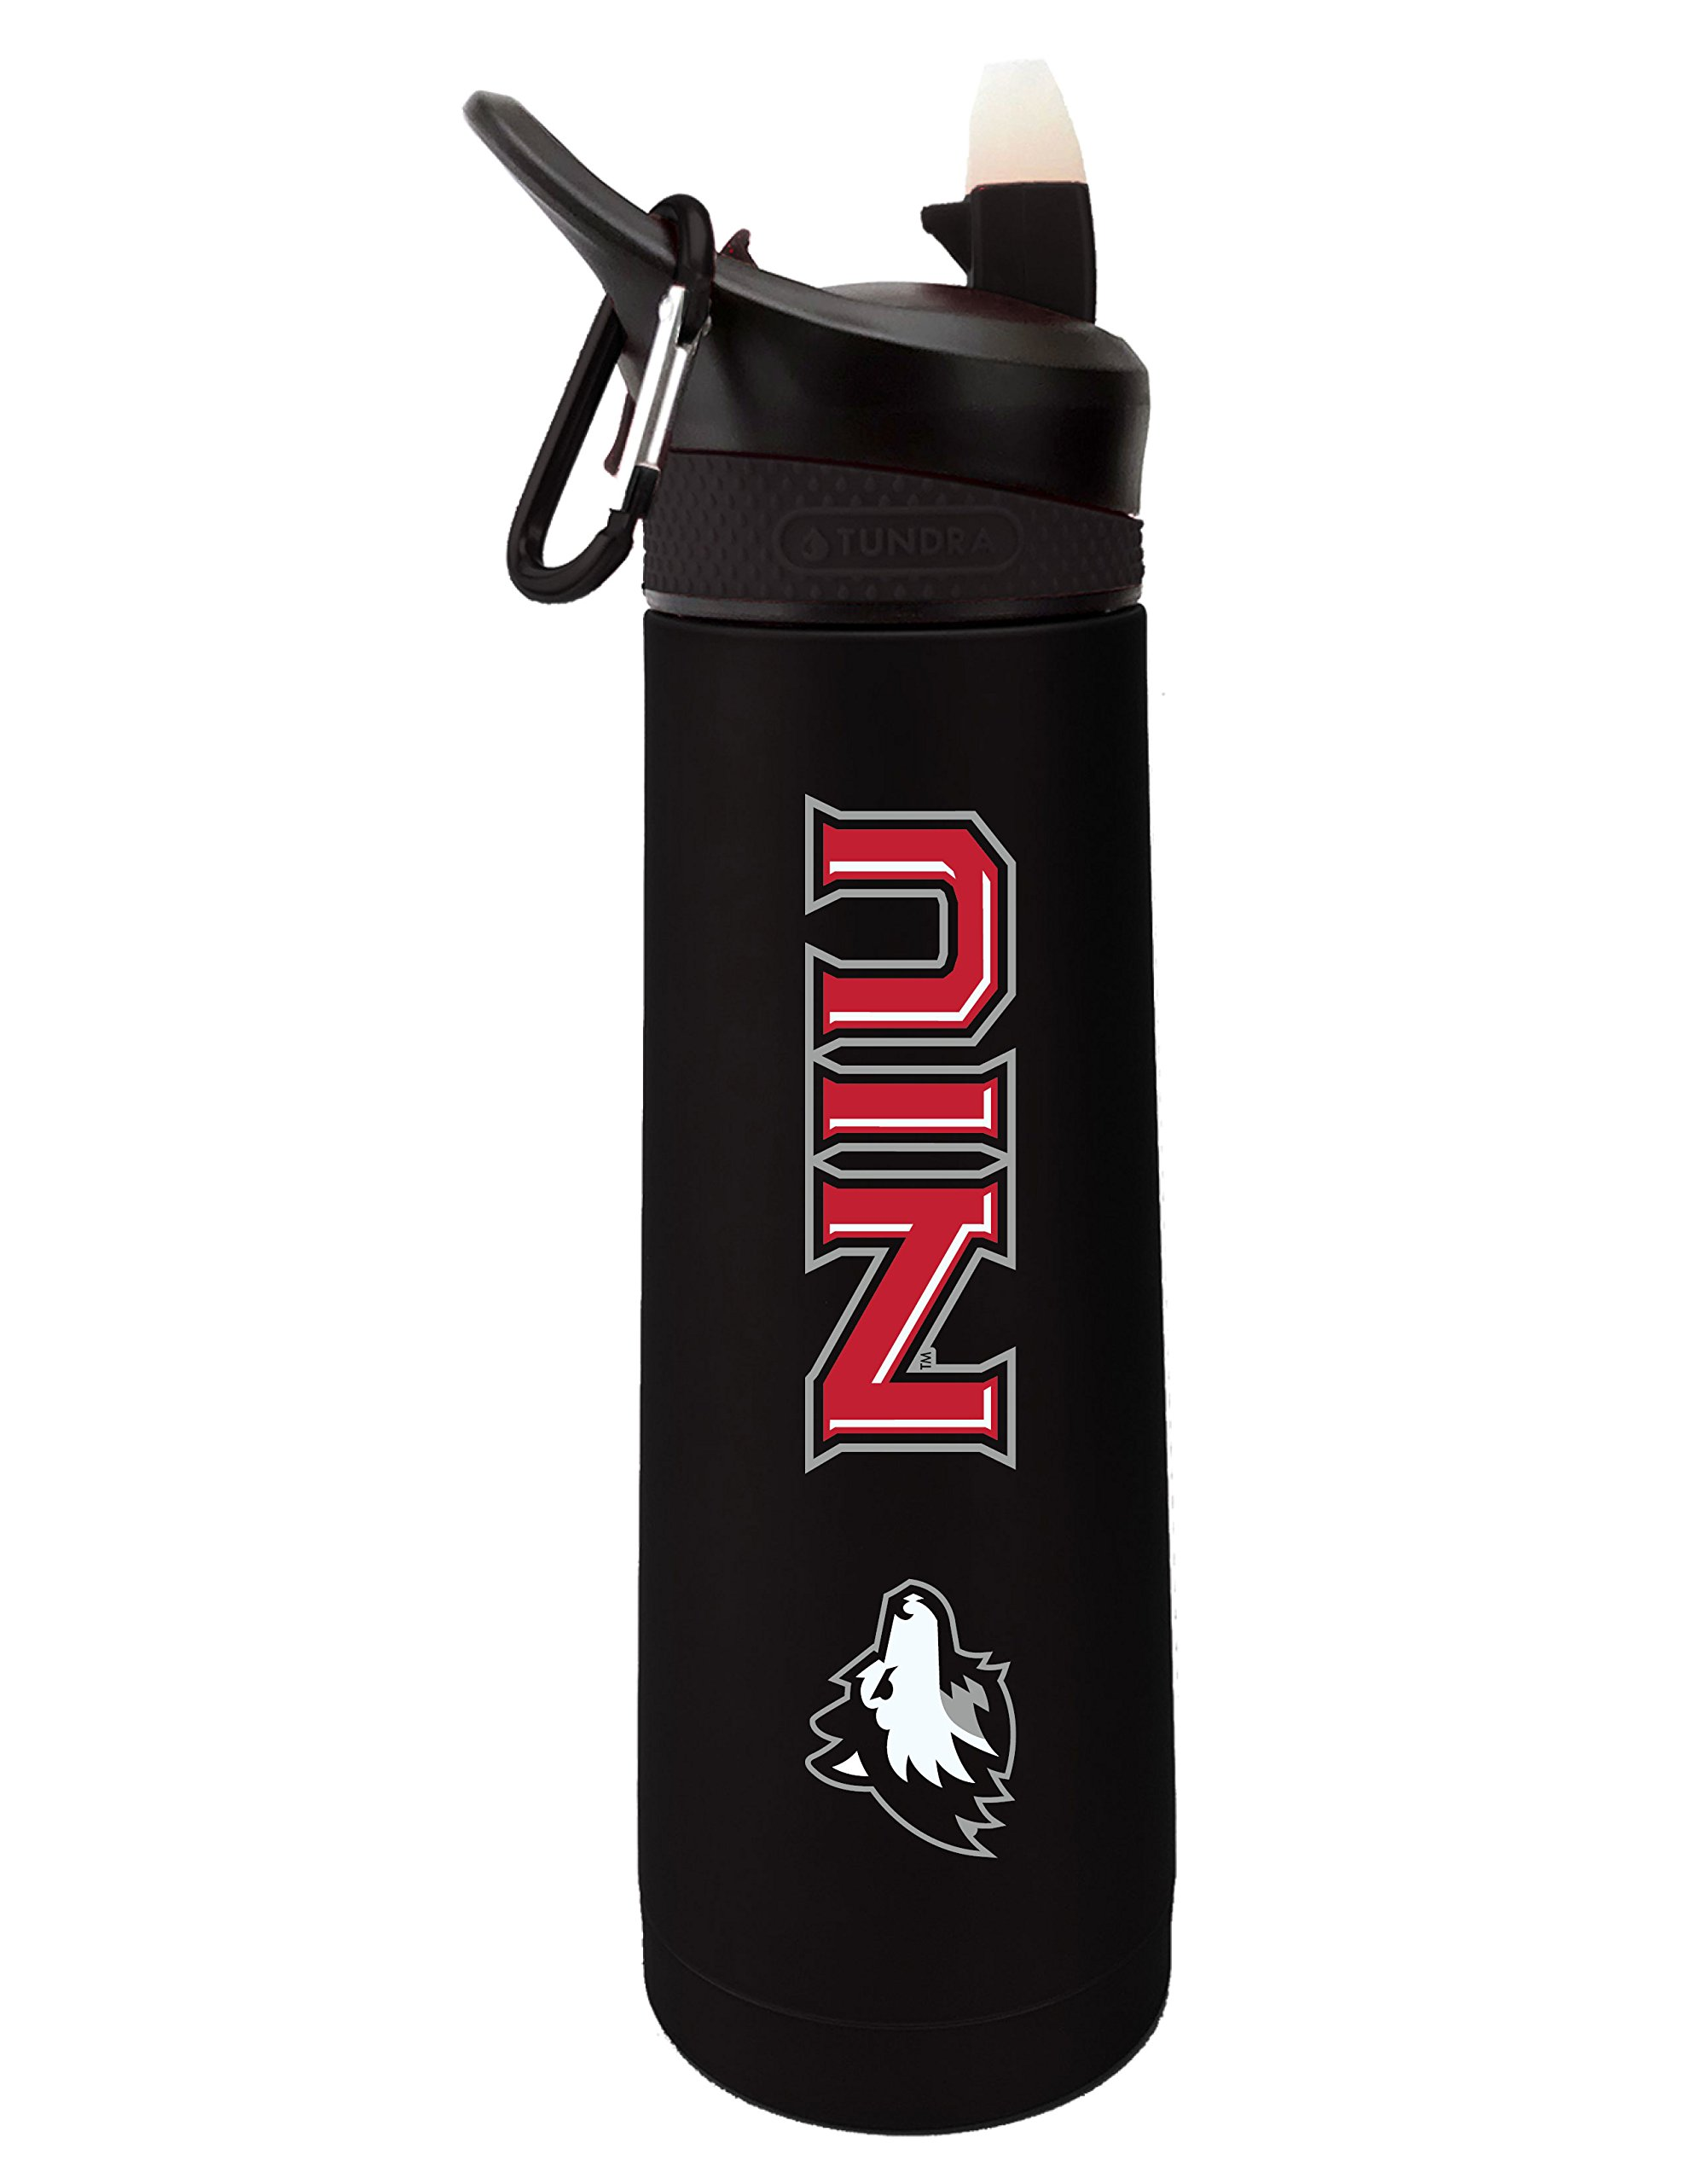 Fanatic Group Northern Illinois University Dual Walled Stainless Steel Sports Bottle, Design 1 - Black